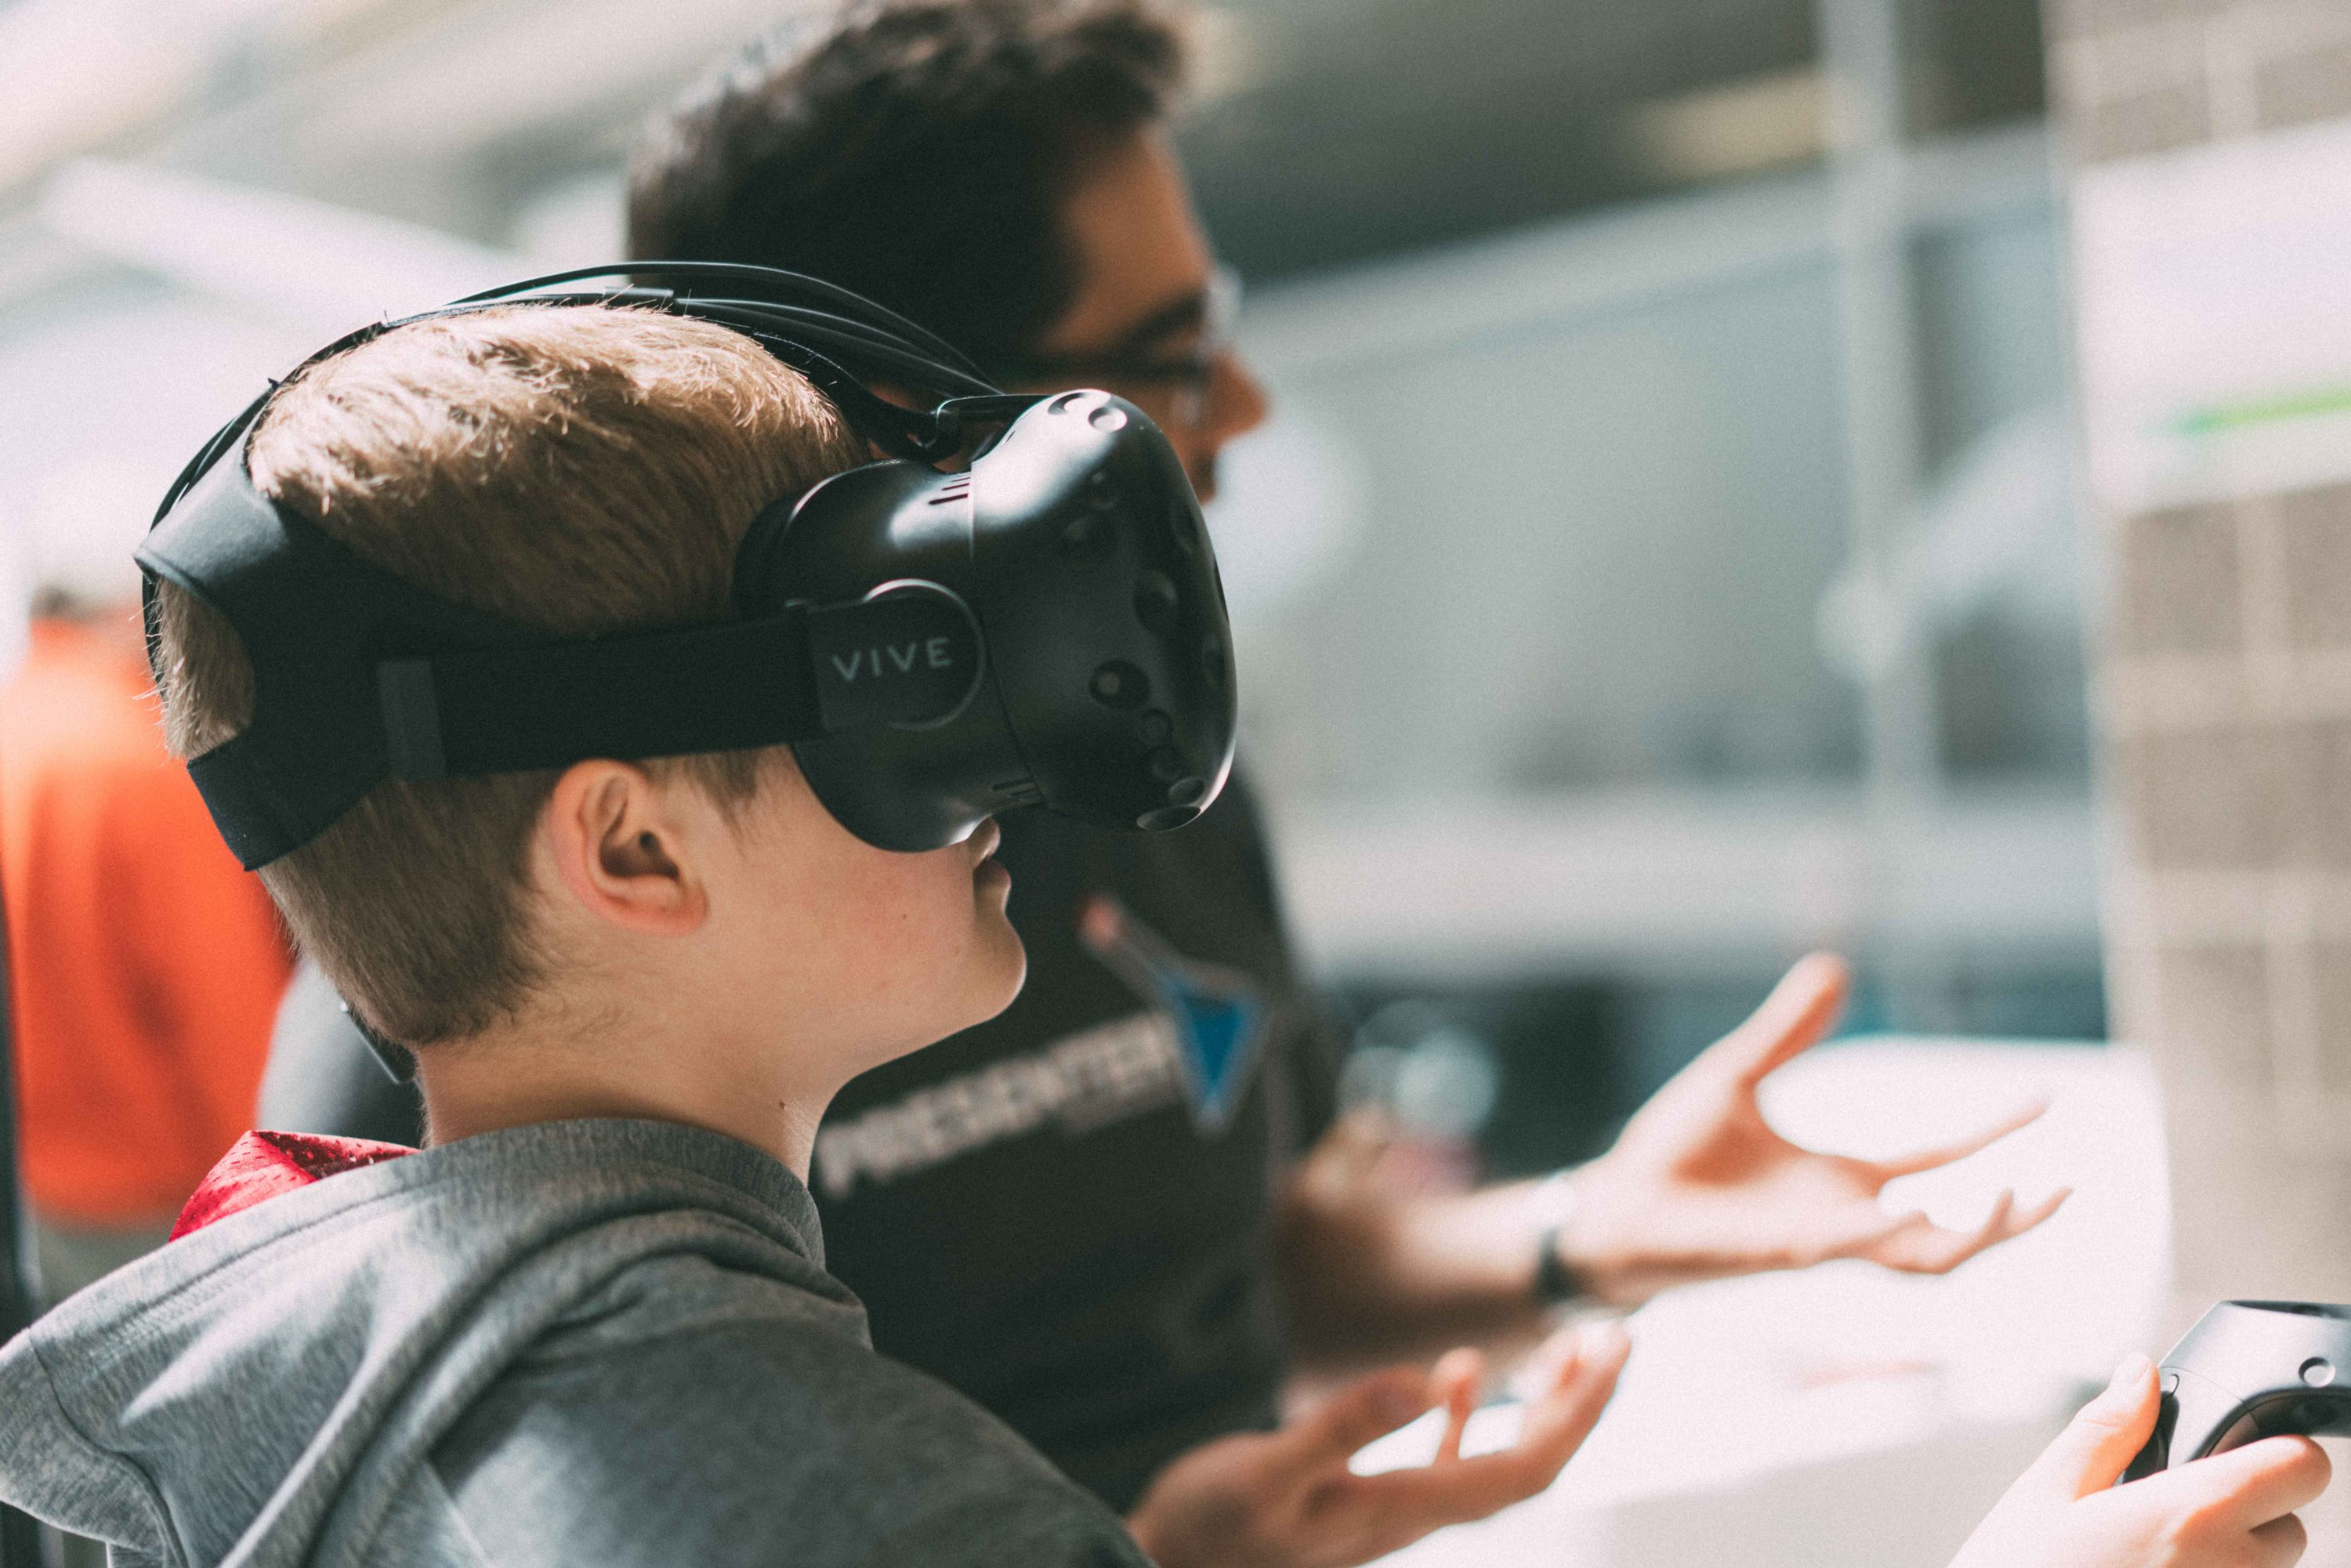 Child using VR setup